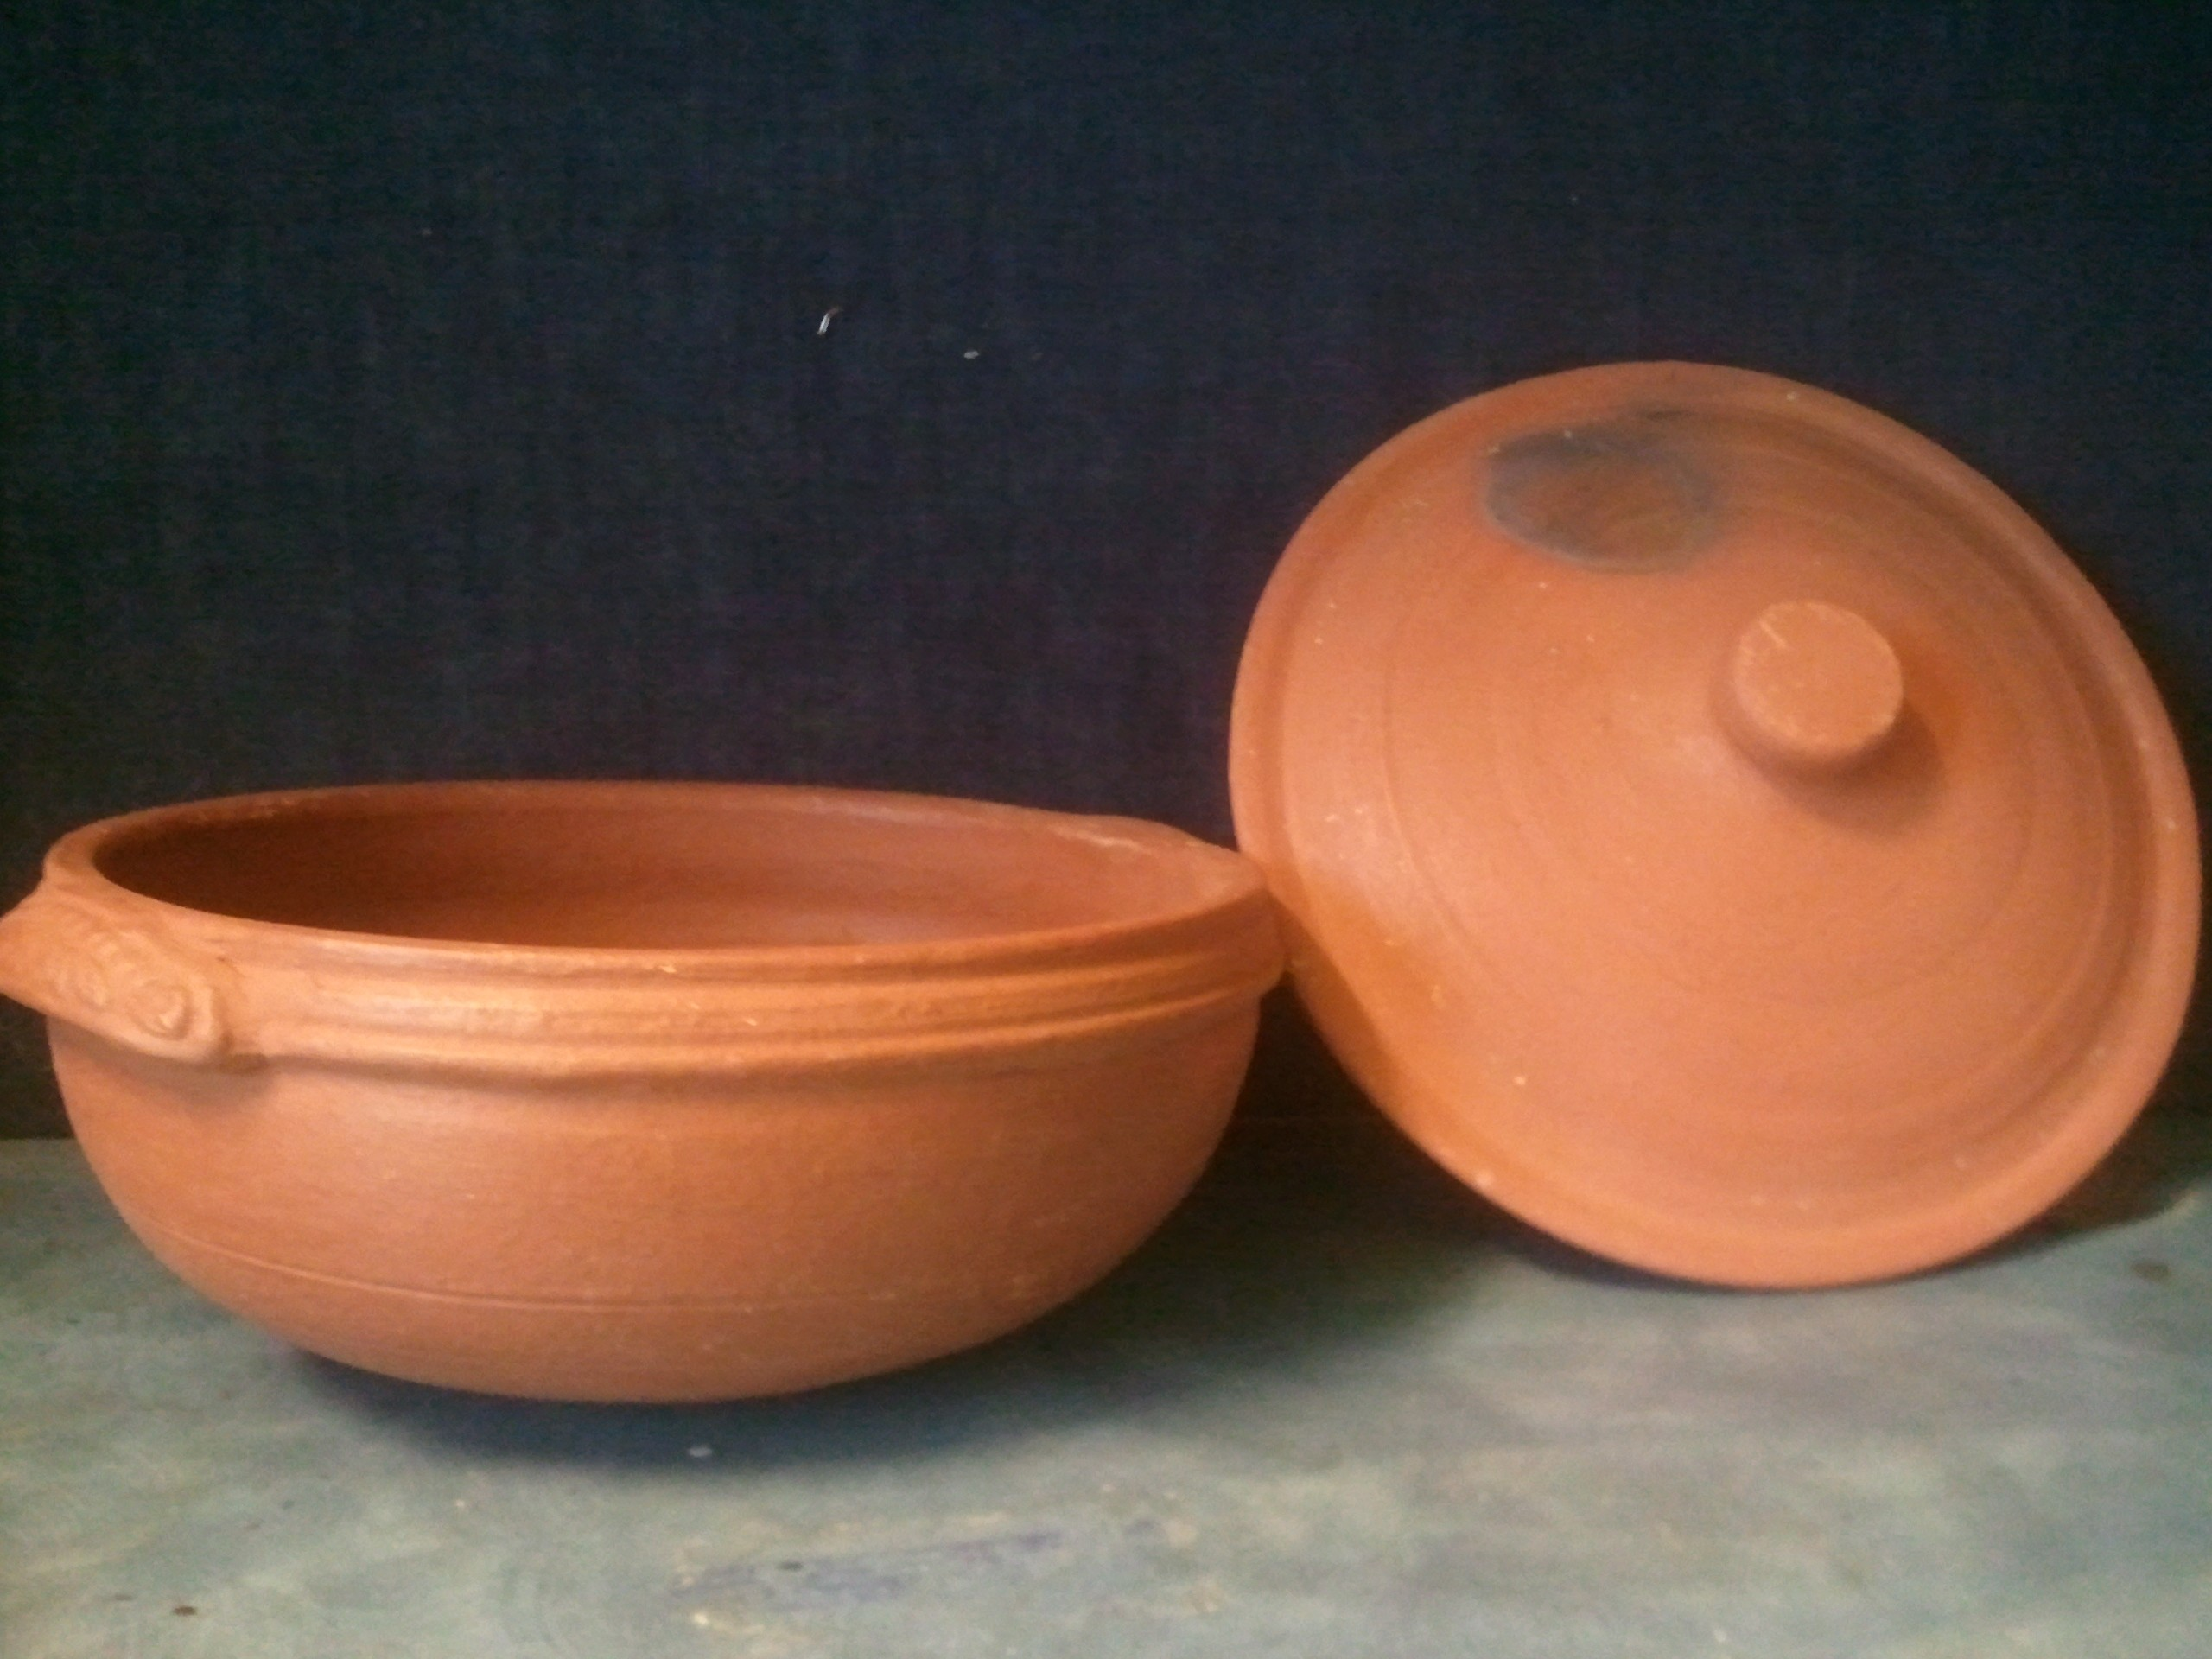 online organic store & catering services clay utensils organic